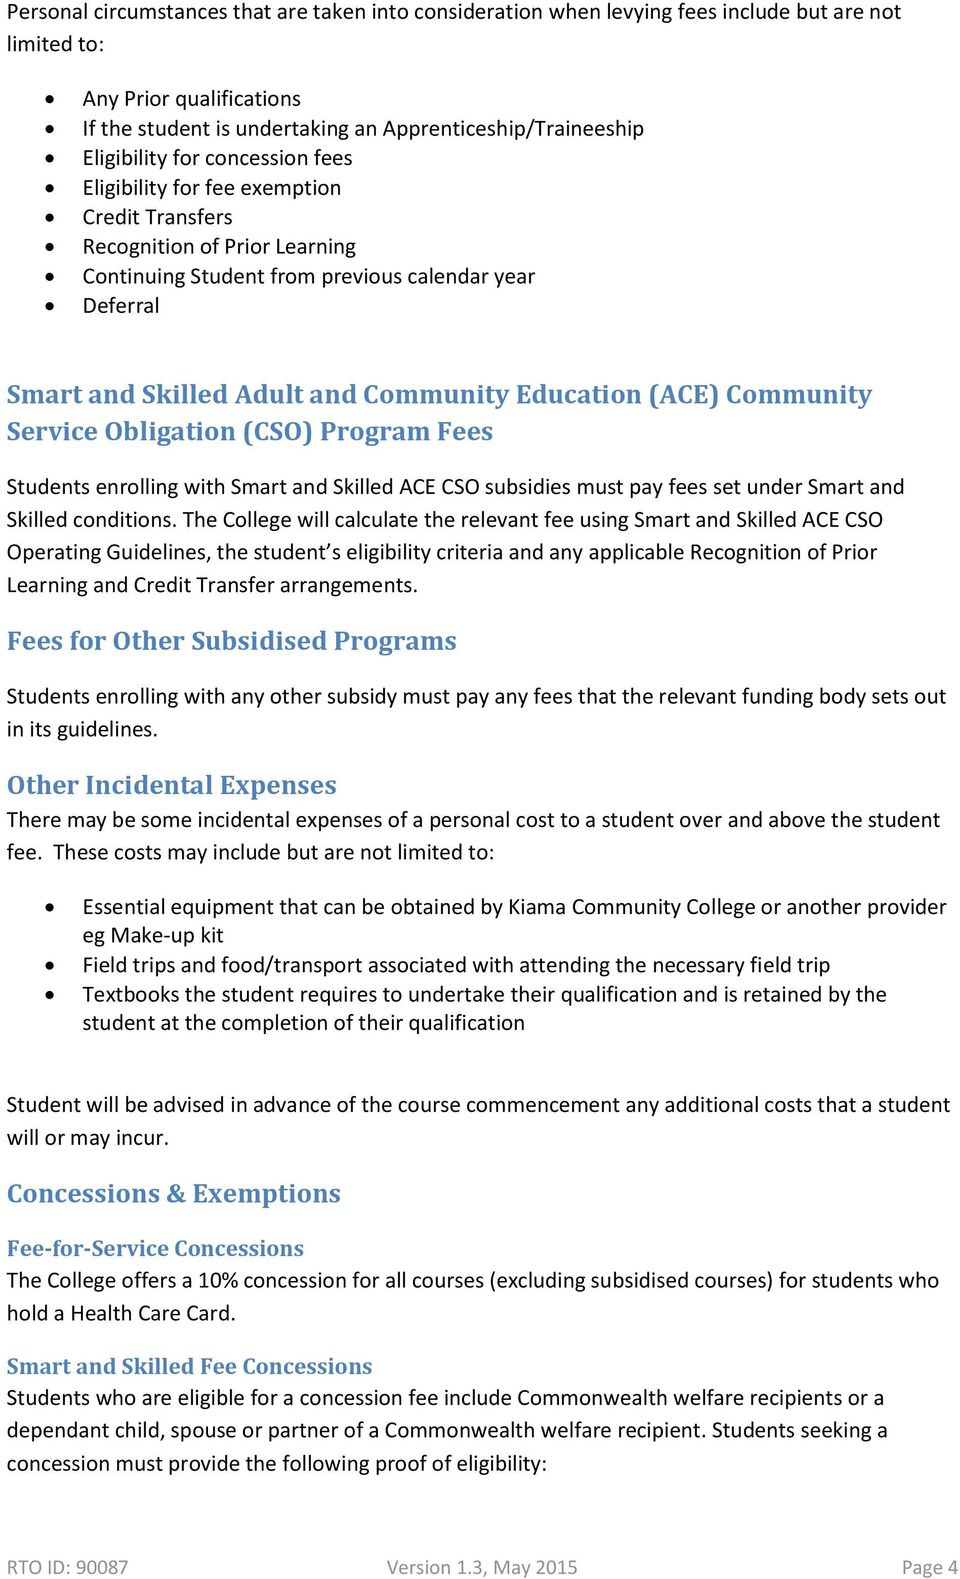 Community Education (ACE) Community Service Obligation (CSO) Program Fees Students enrolling with Smart and Skilled ACE CSO subsidies must pay fees set under Smart and Skilled conditions.